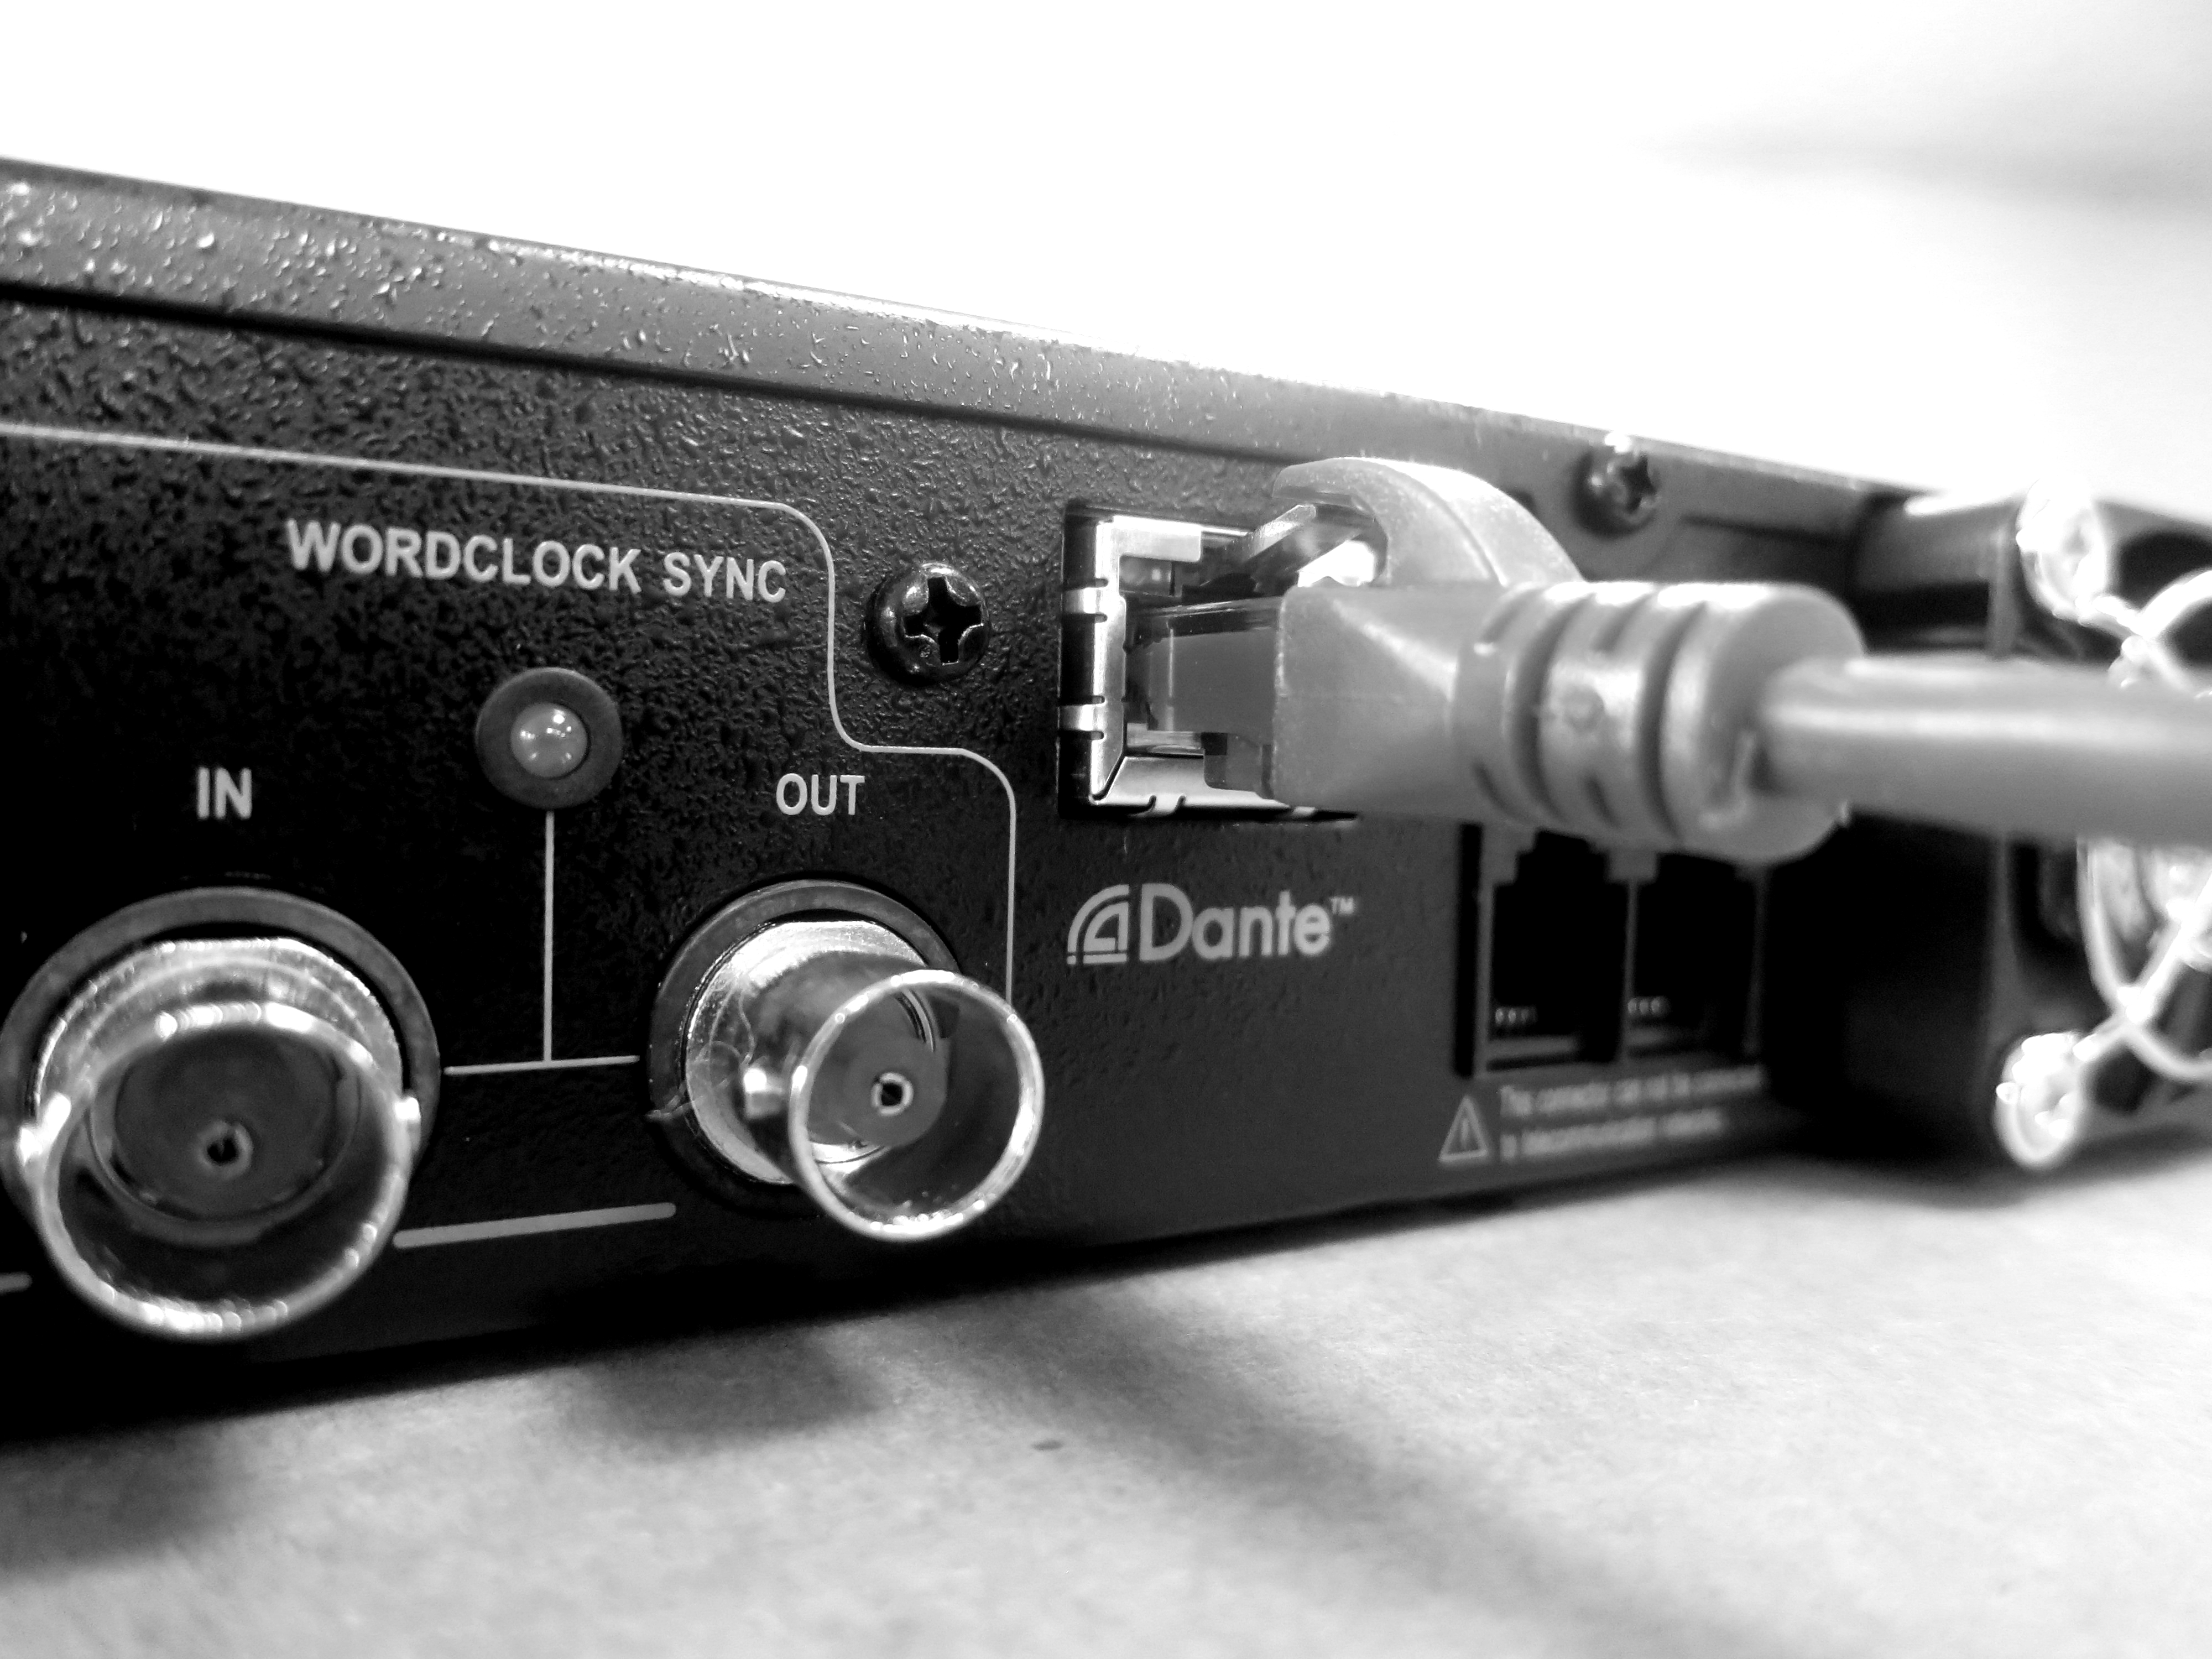 Mipro Dante Enabled Digital Microphones Cuk Audio Uhf Preamplifier Launched The First True Wireless Radio Microphone System Back In 2006 Act 8